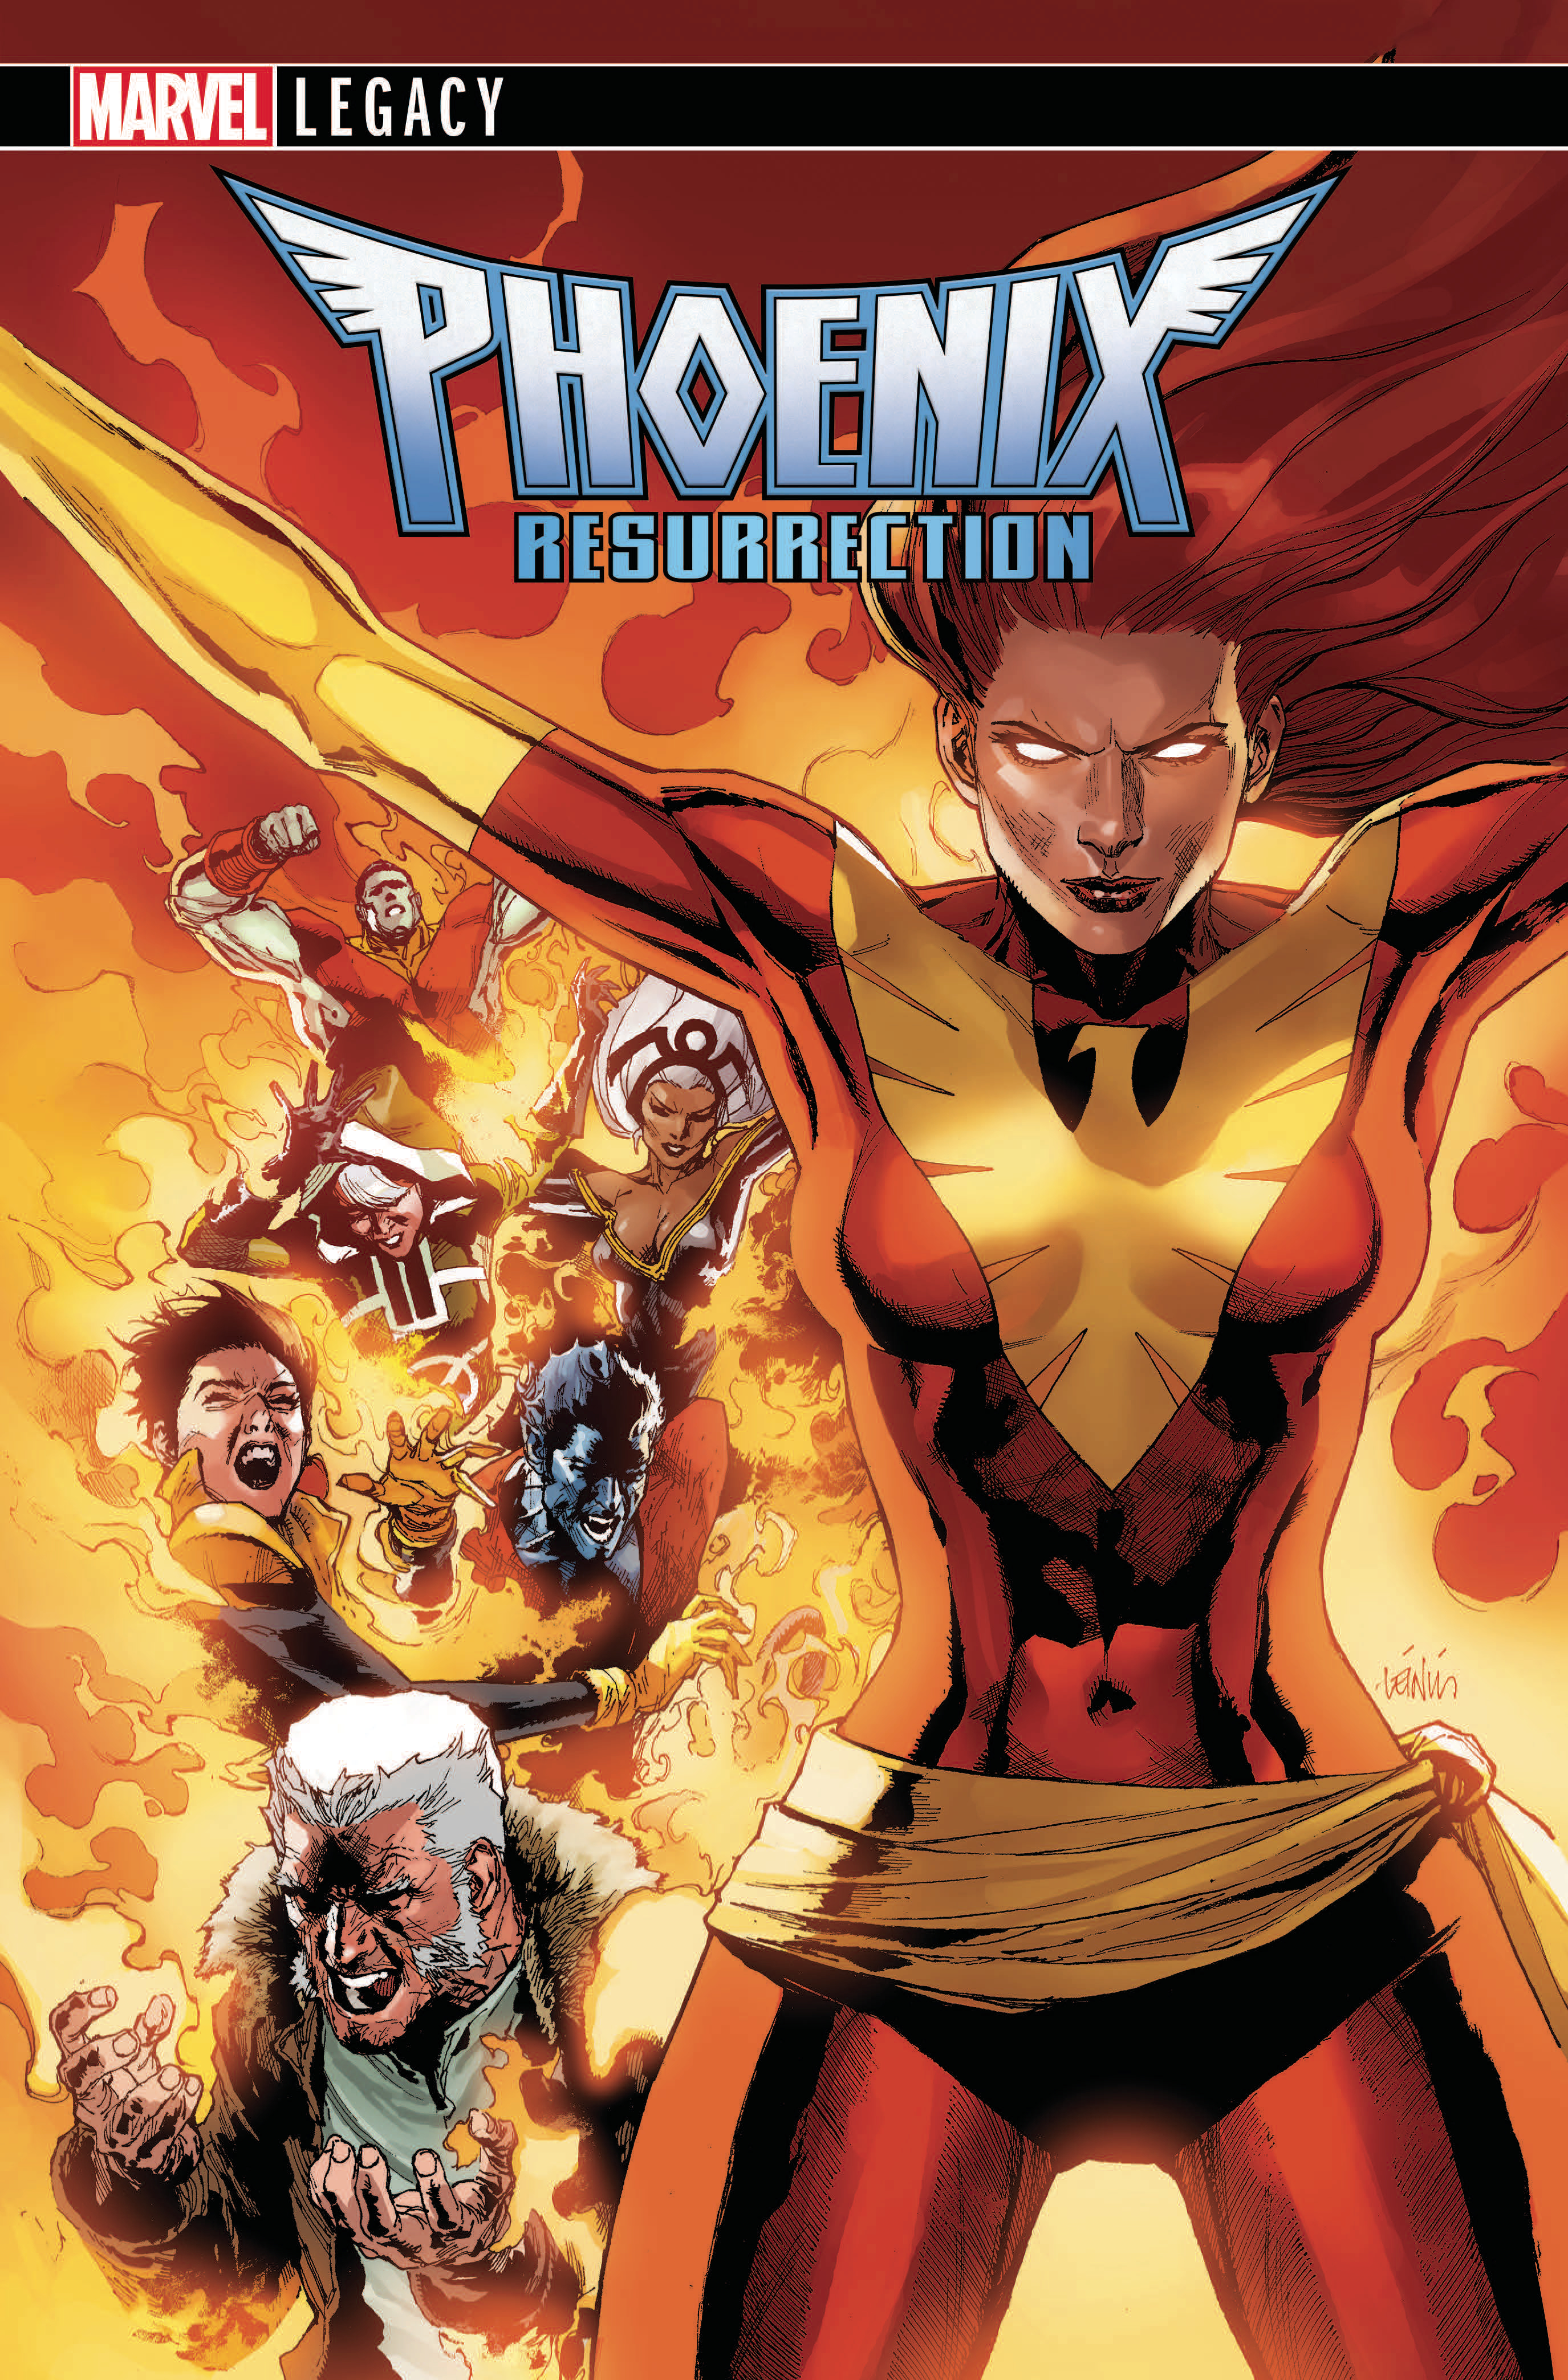 PHOENIX RESURRECTION RETURN JEAN GREY #1